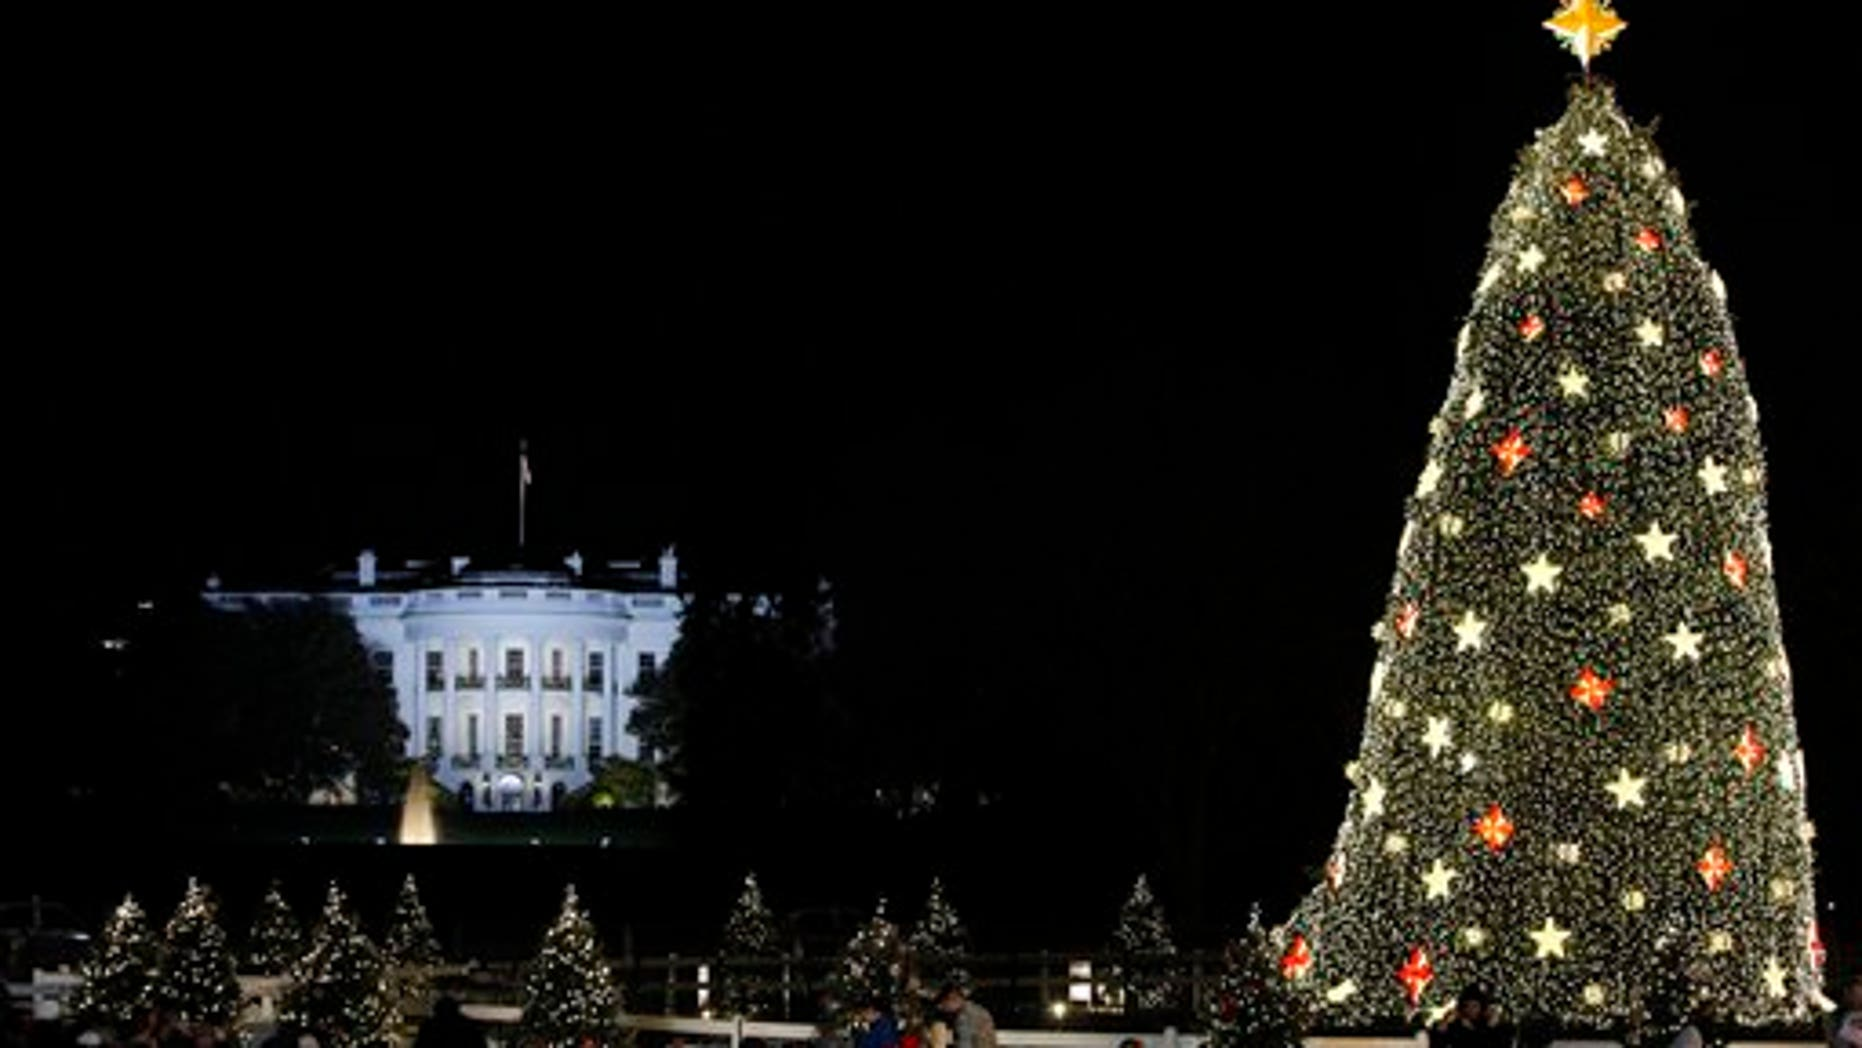 The White House is seen in the background after the lighting of the National Christmas Tree, Thursday, Dec. 3, 2009, in Washington. (AP Photo/Haraz N. Ghanbari)